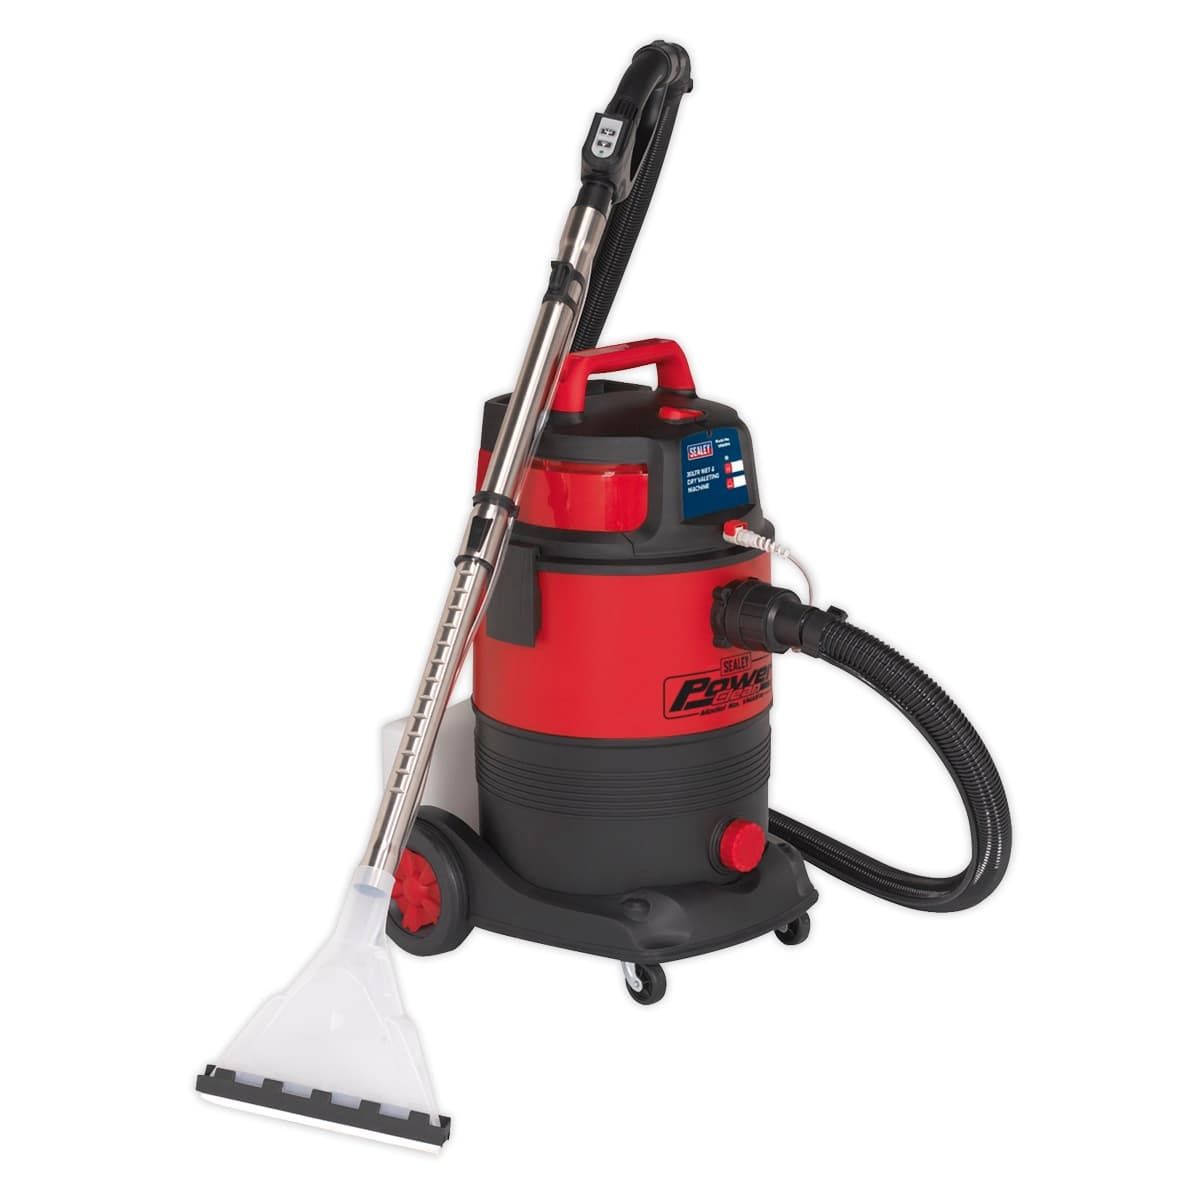 Valet Machine Wet & Dry 30L | High powered unit ideal for cleaning carpets, car interiors, fabrics and upholstery. | toolforce.ie